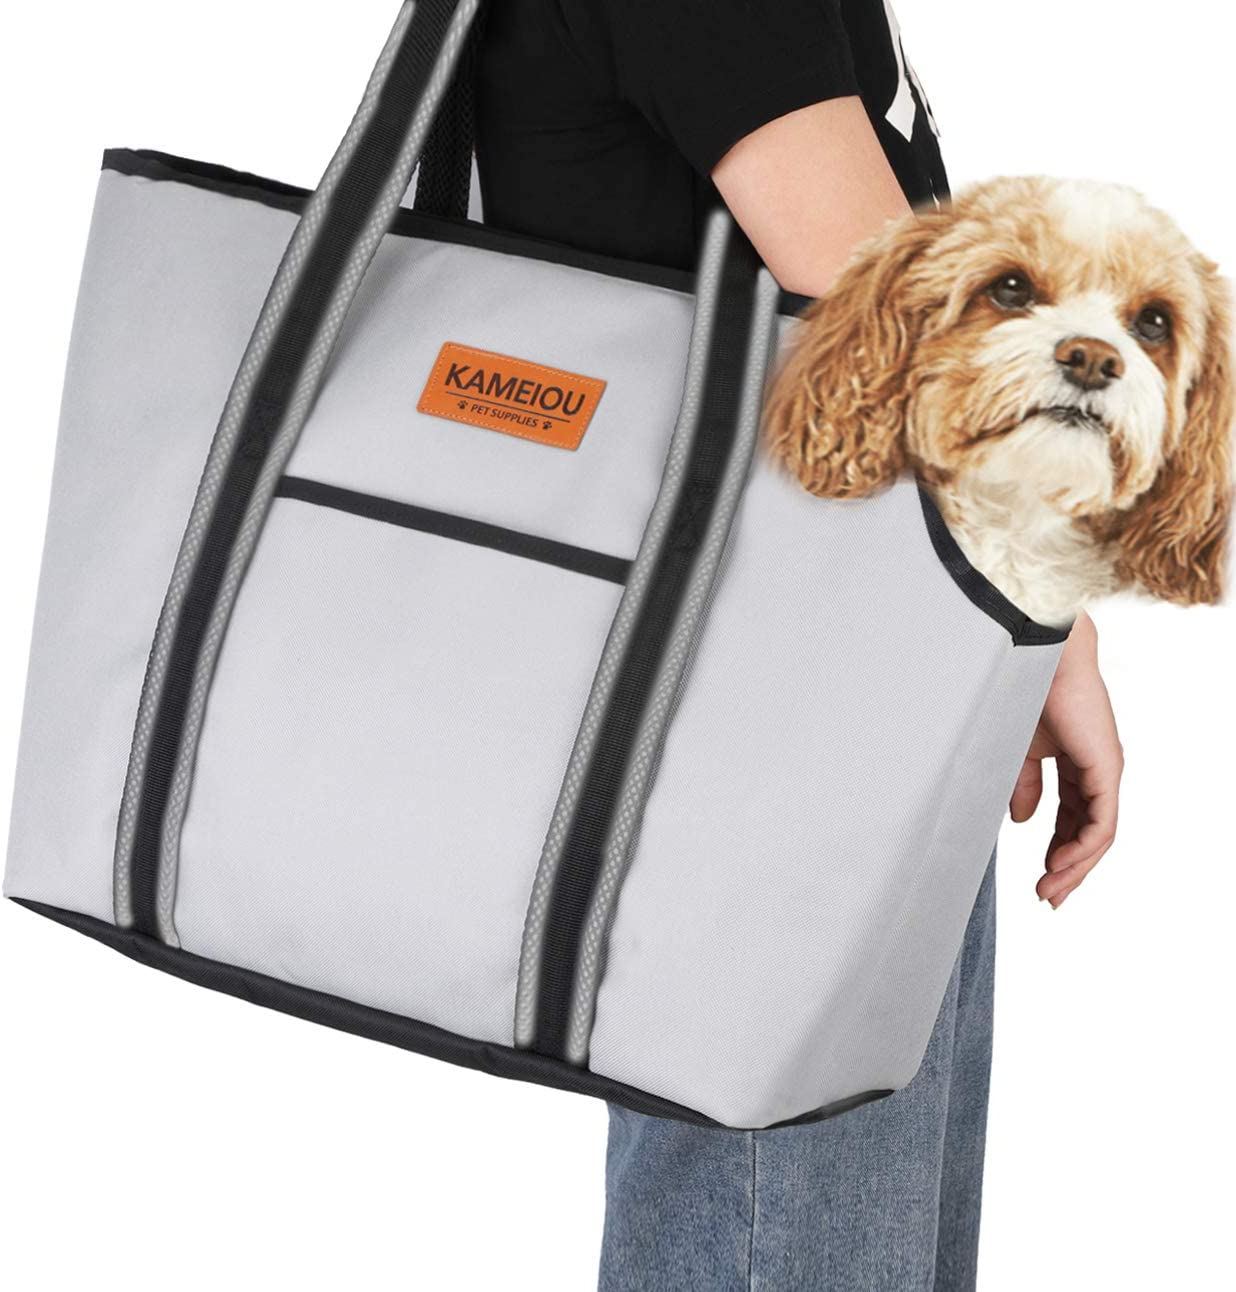 Pet Dog Purse Carrier Bag for Small Dogs Puppy Cats Travel Soft-Sided Tote Carriers with Pockets Secure Hook Pedal Outcrop Design Portable Small Pet Carriers for Outdoor Subway Doggy Carriers